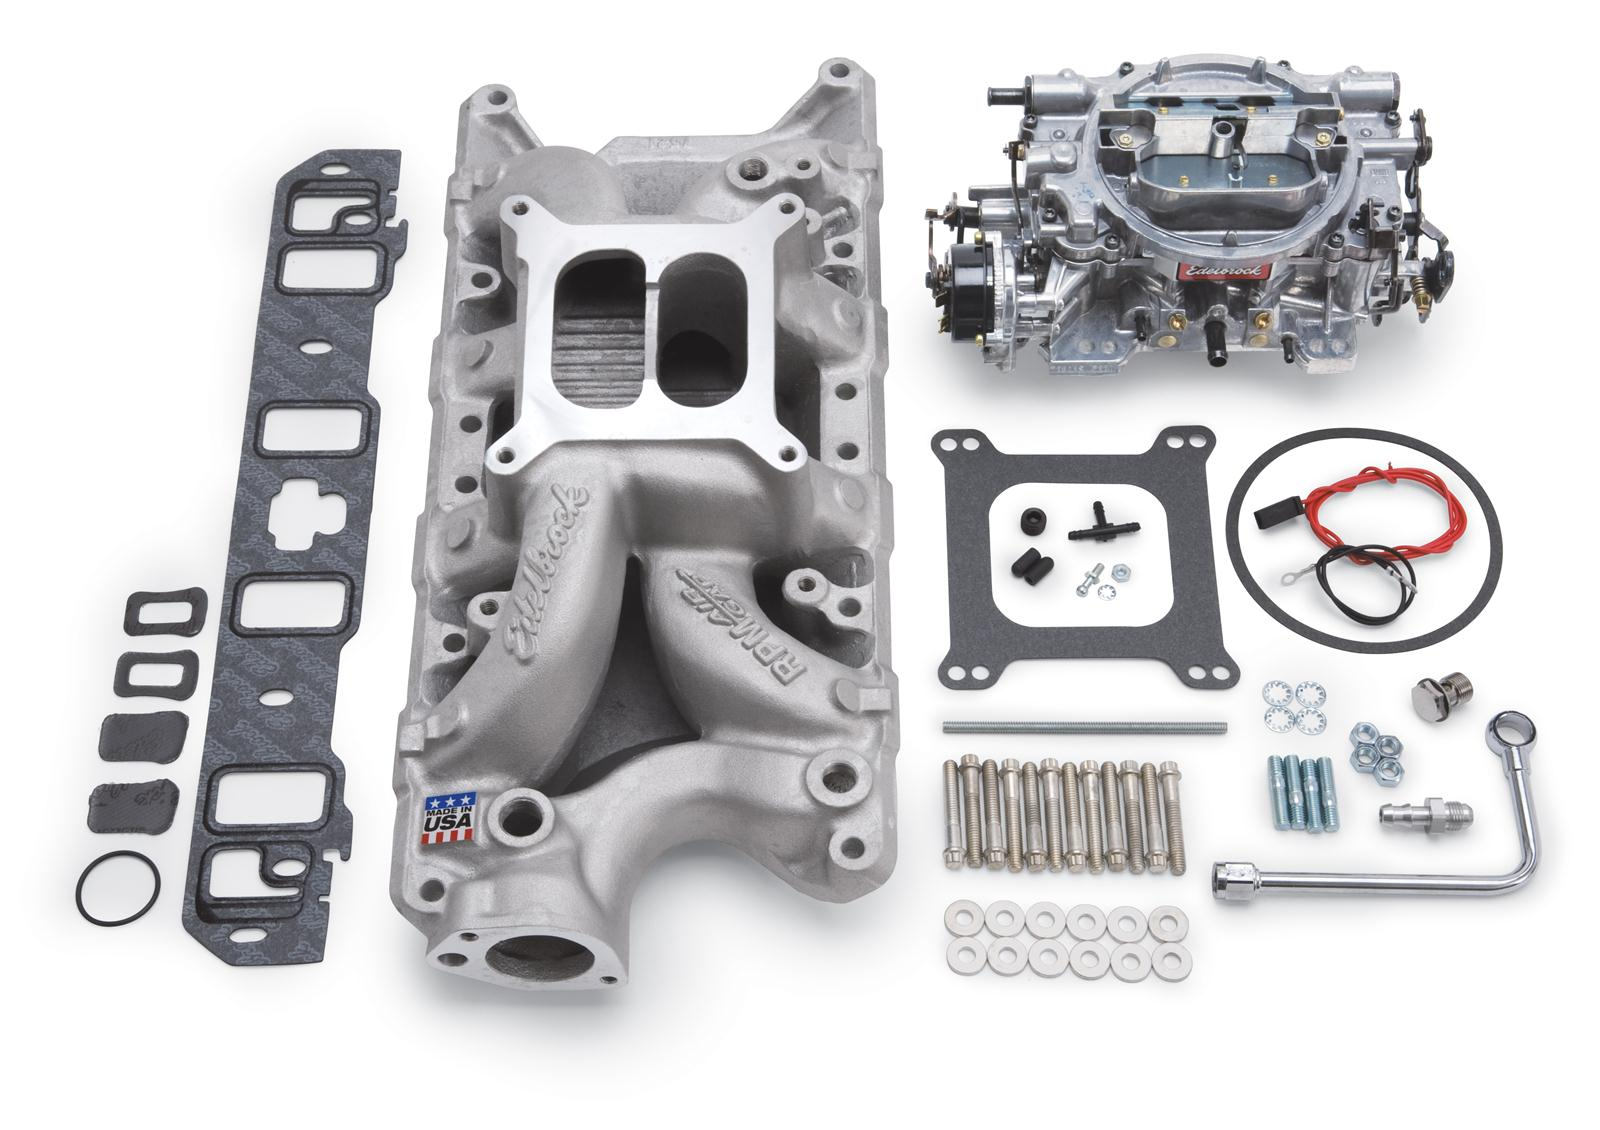 Edelbrock Performer RPM Air-Gap Intake Manifold and